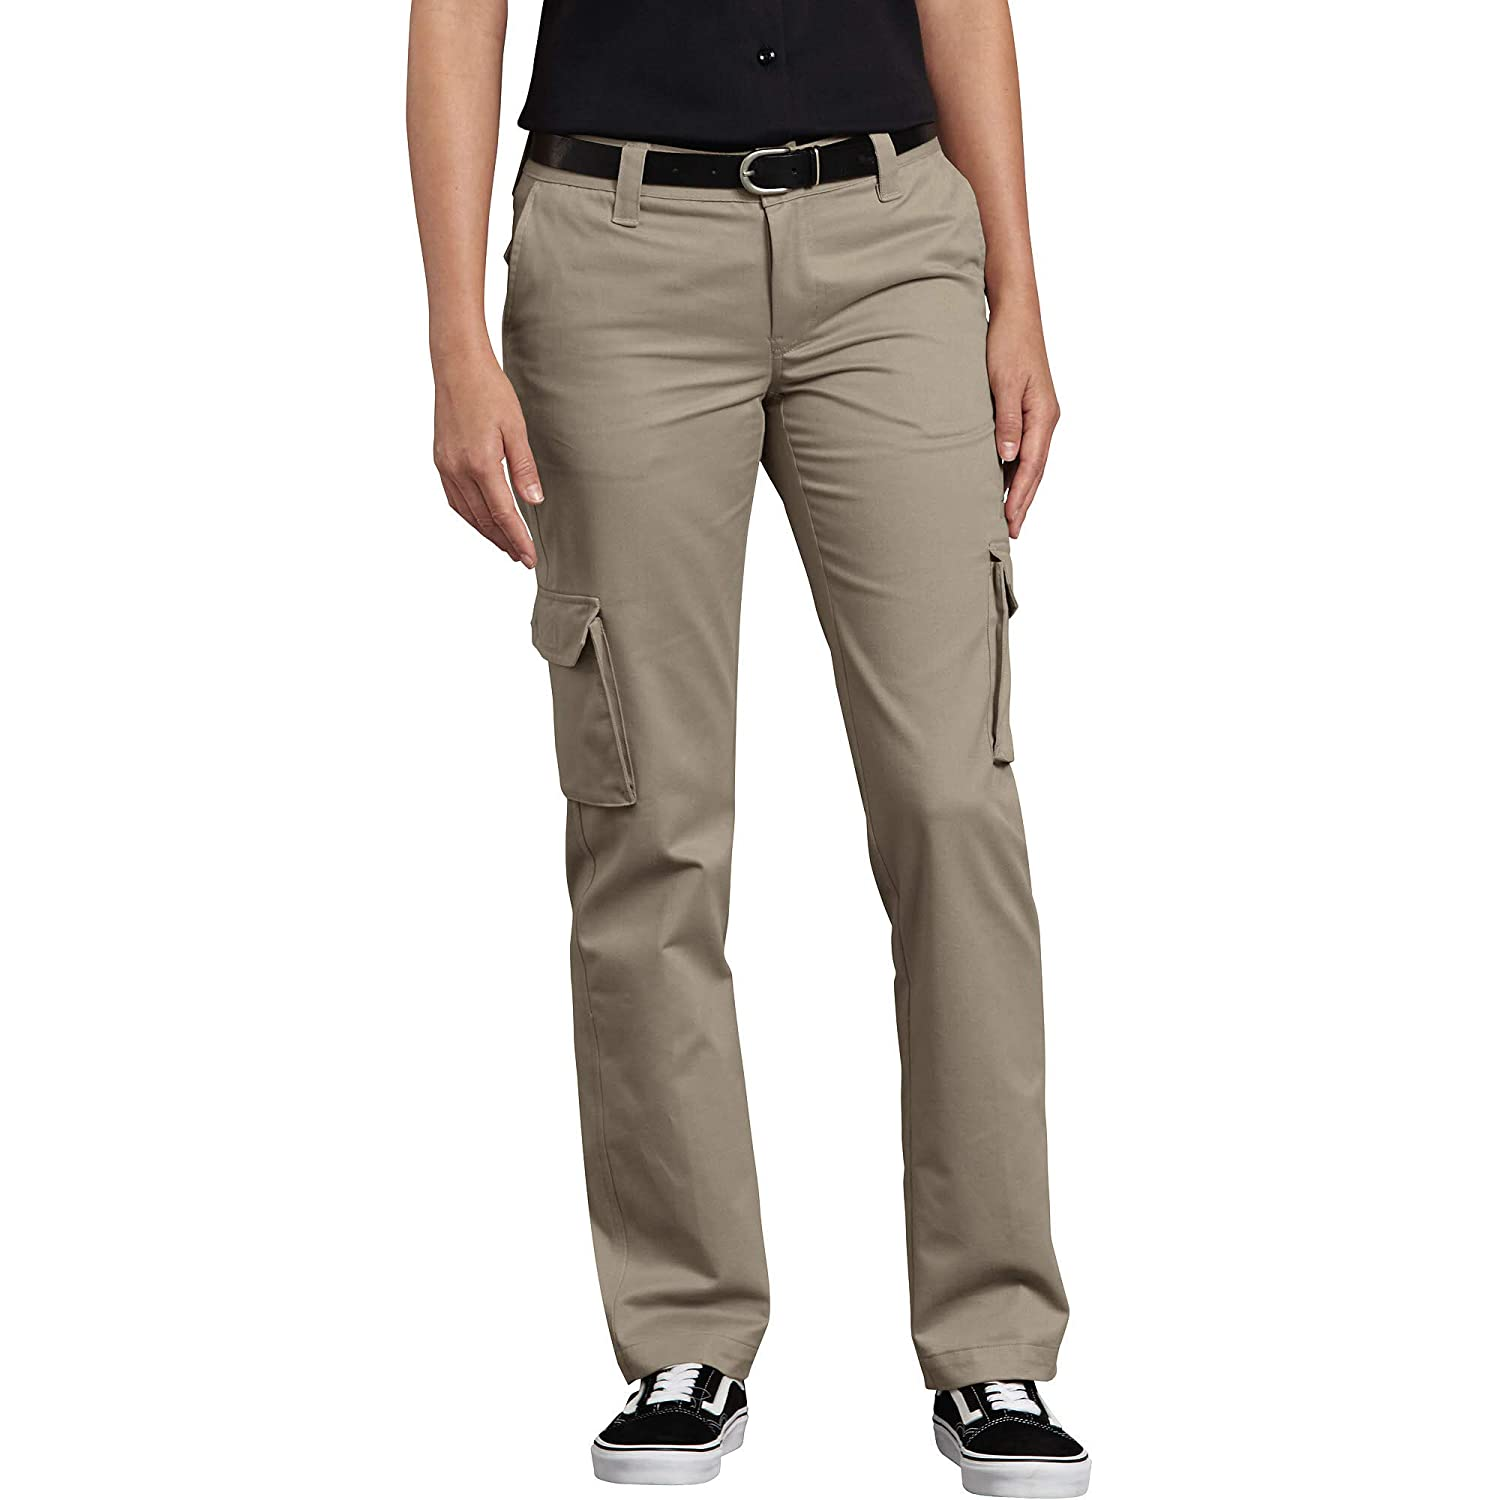 Desert Sand Dickies Womens Relaxed Fit Stretch Cargo Straight Leg Pant Work Utility Pants